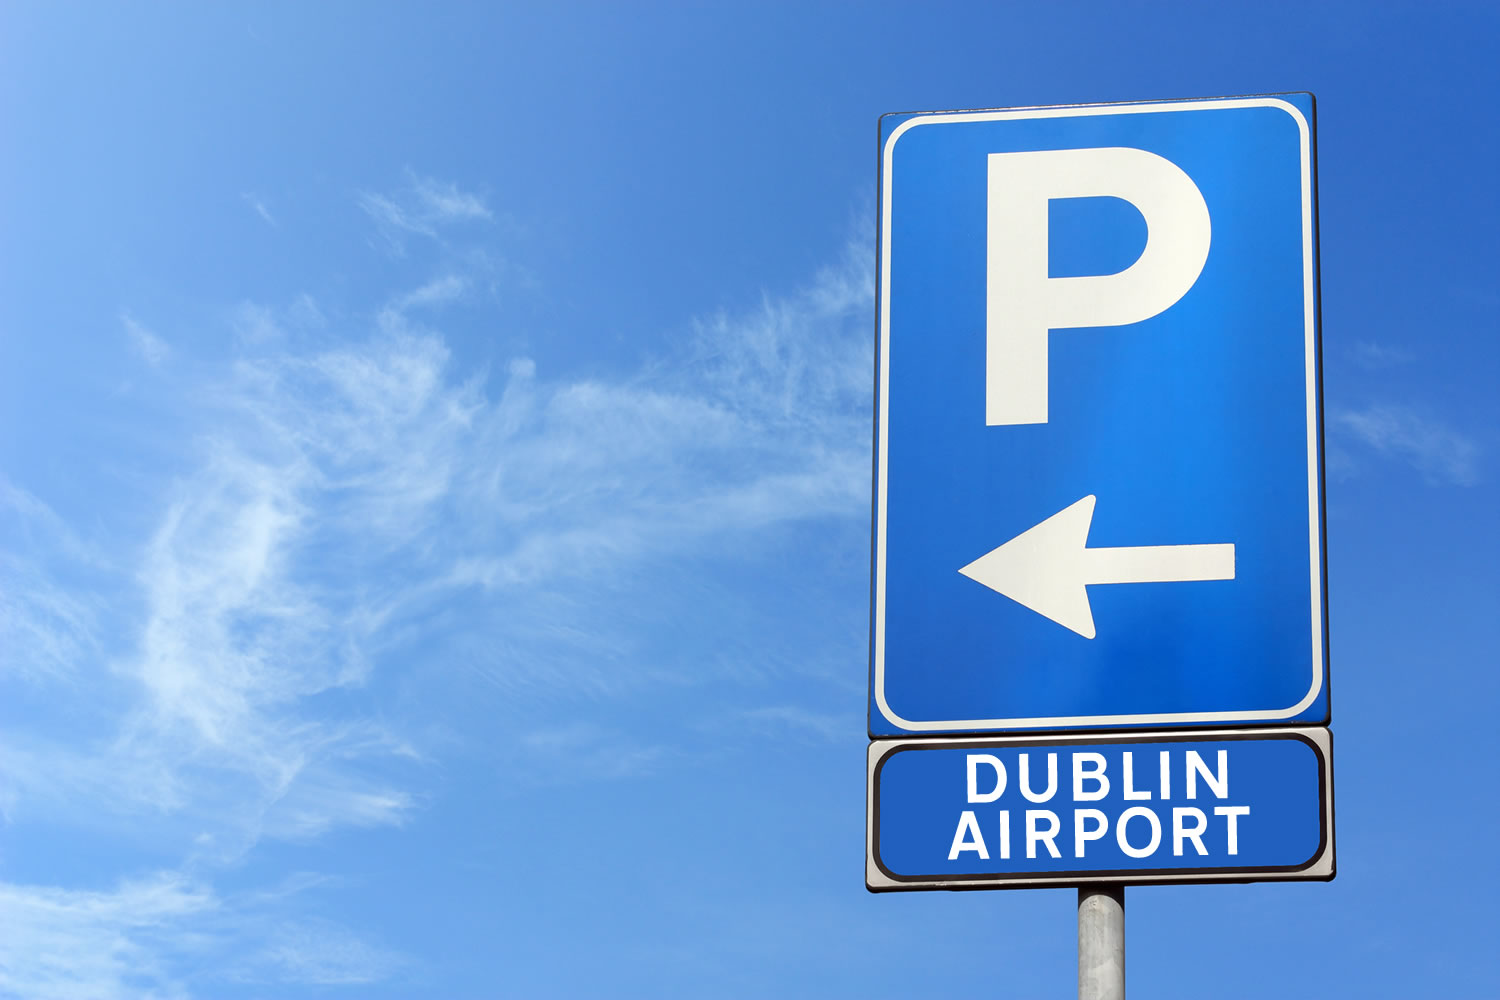 Short Term Car Park Dublin Airport Promotional Code